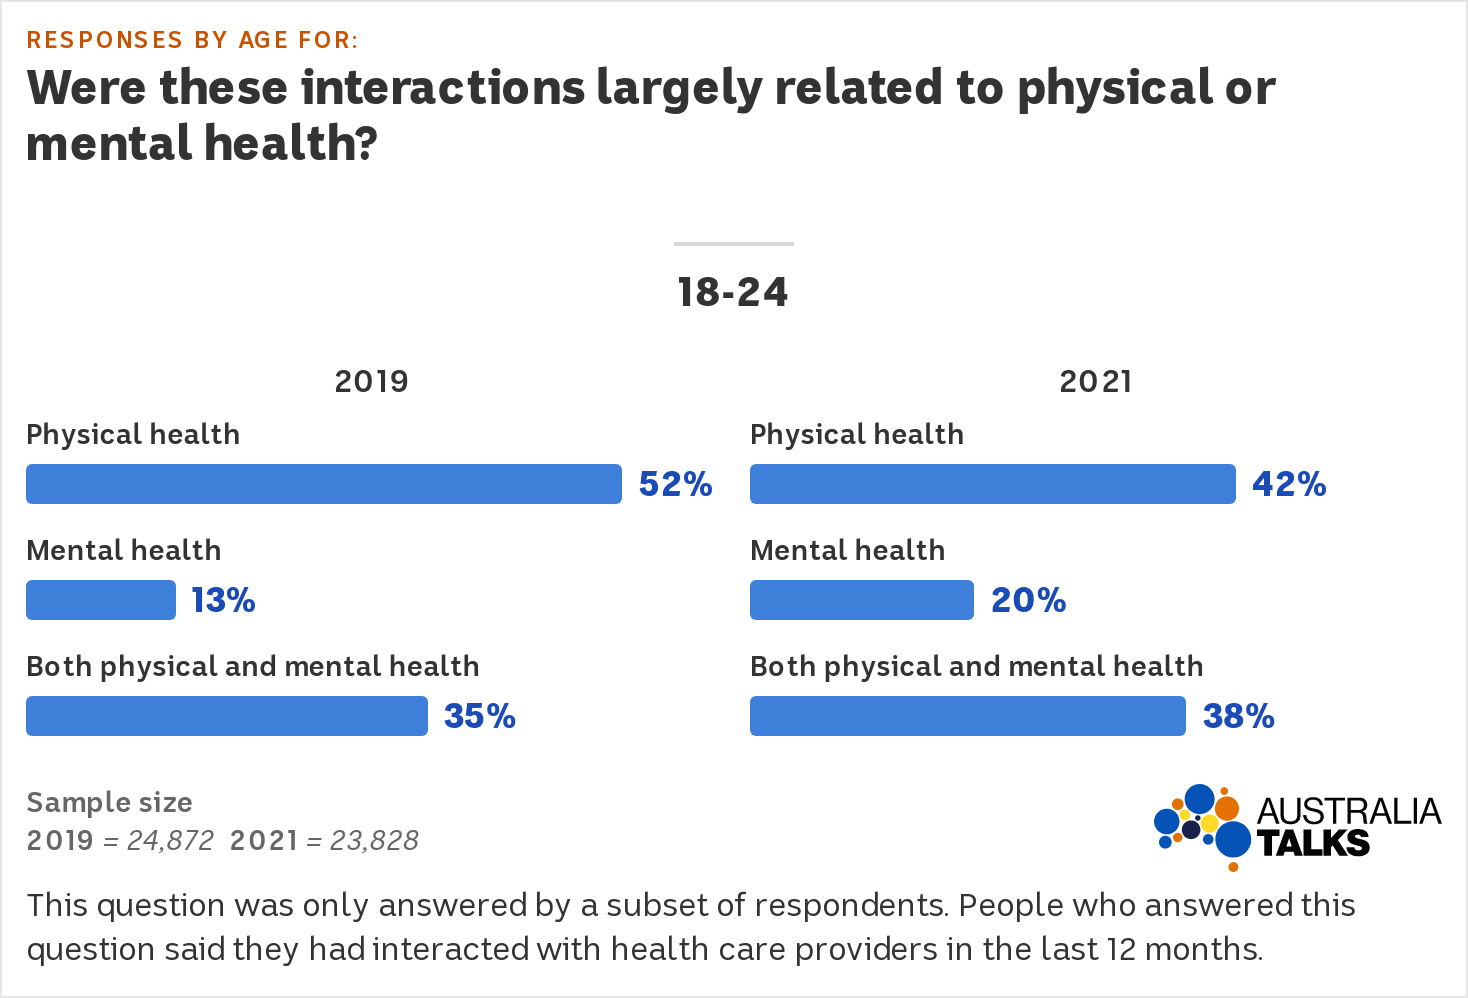 The chart shows an increase from 13% to 20% saying 'mental health' and 35% to 38% saying 'both physical and mental health'